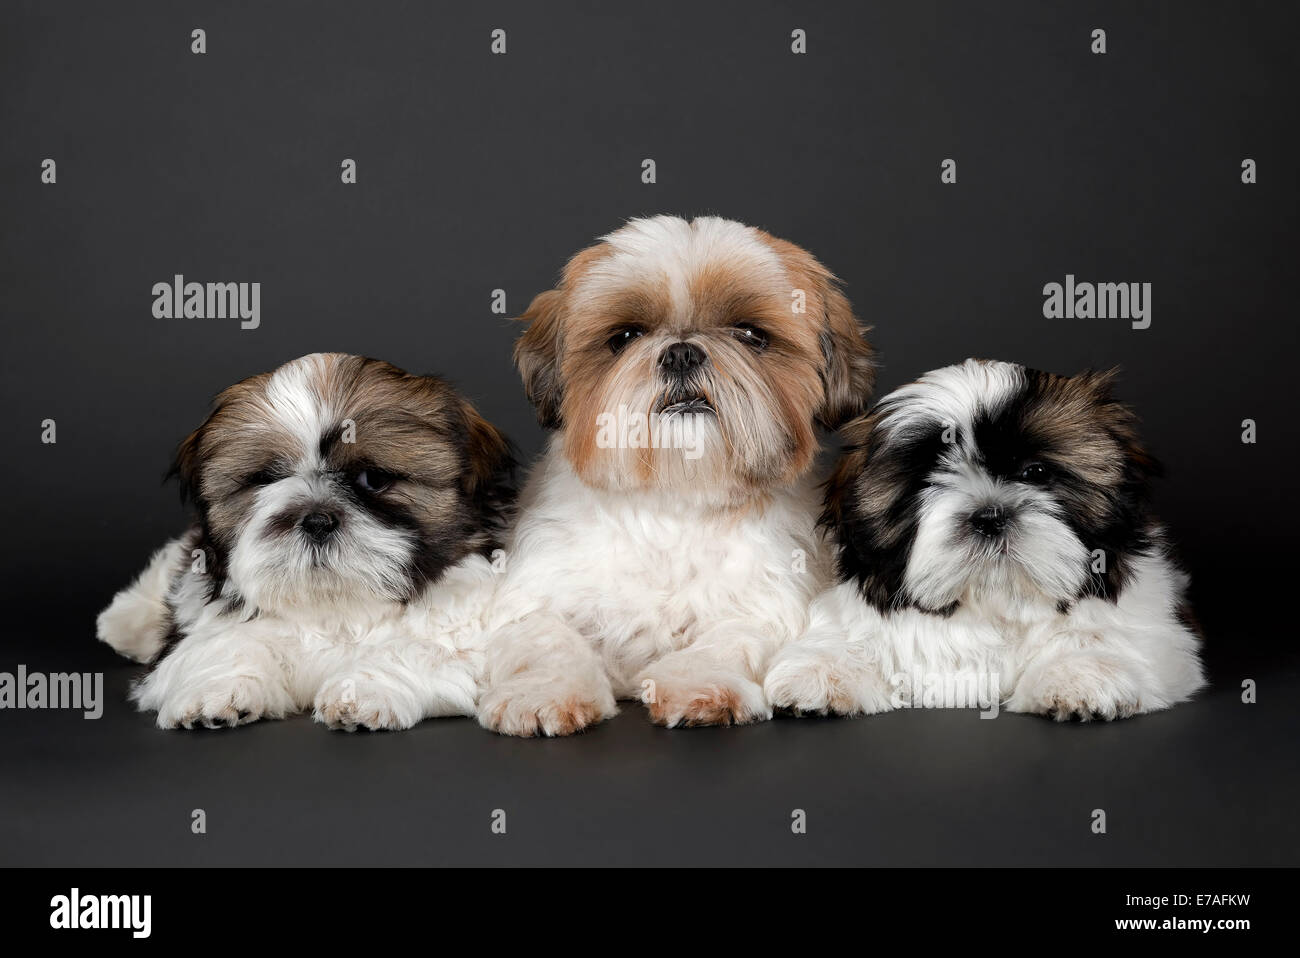 Shih Tzu Puppies 10 Weeks Colour Gold White Stock Photo 73375901